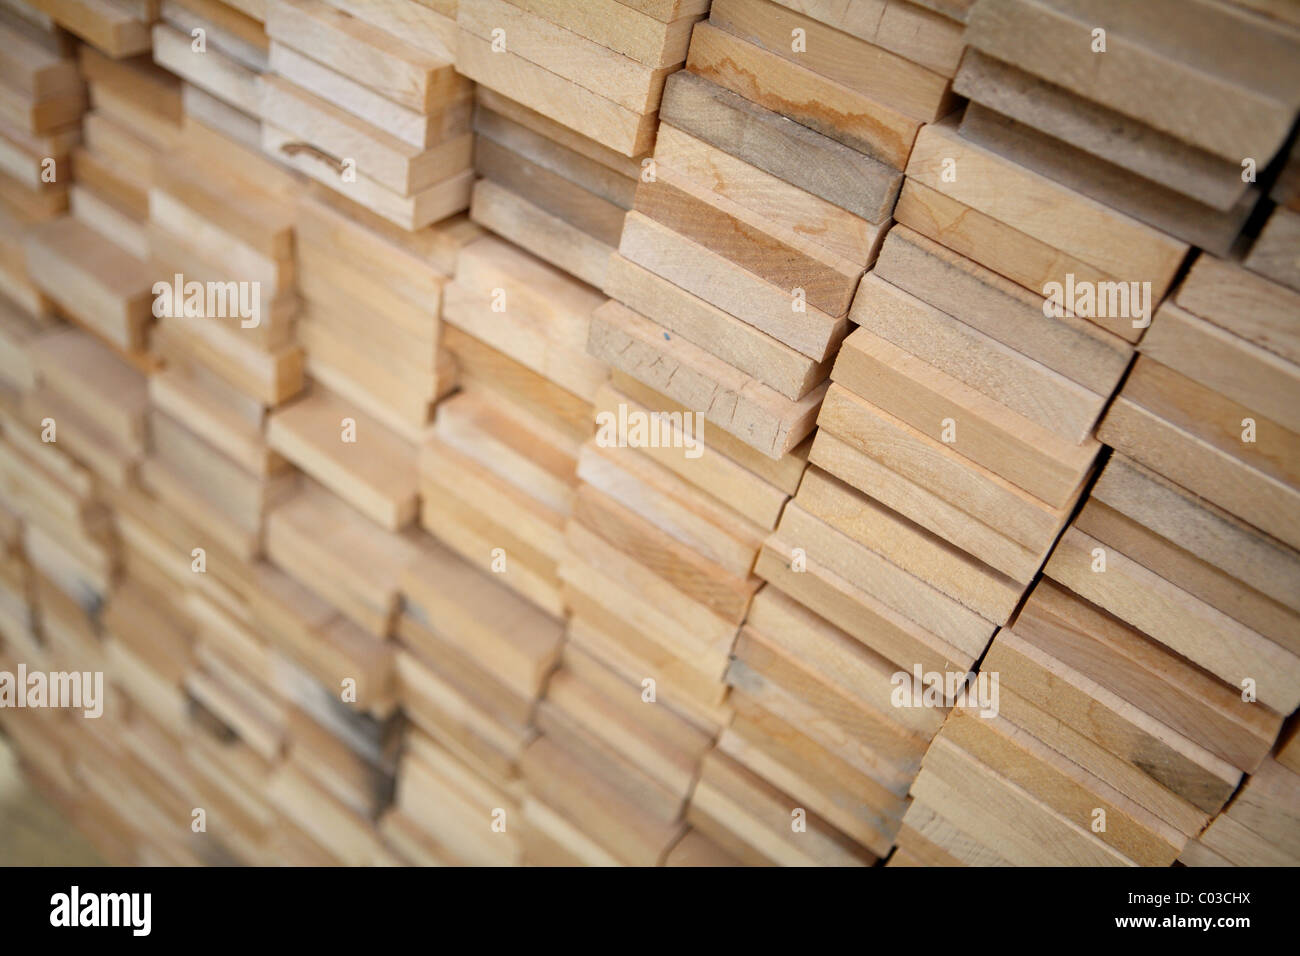 Des planches de bois empilé Photo Stock